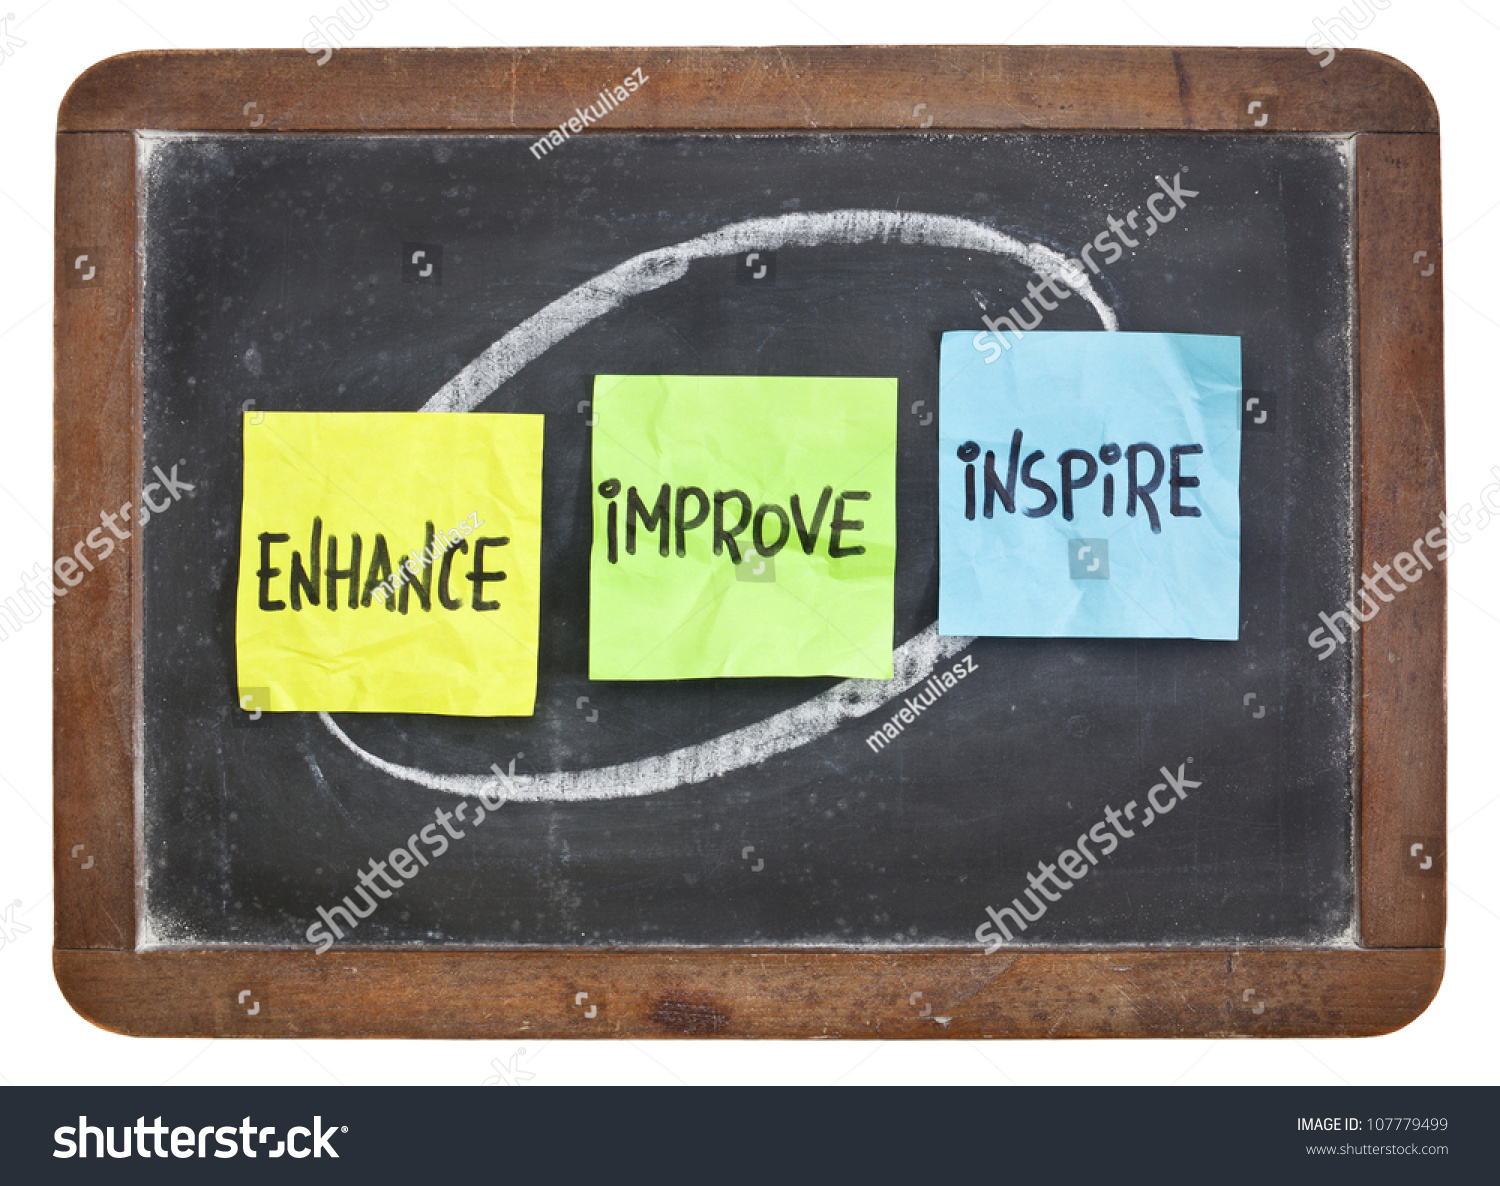 Enhance Improve Inspire Motivation Inspiration Concept Stock